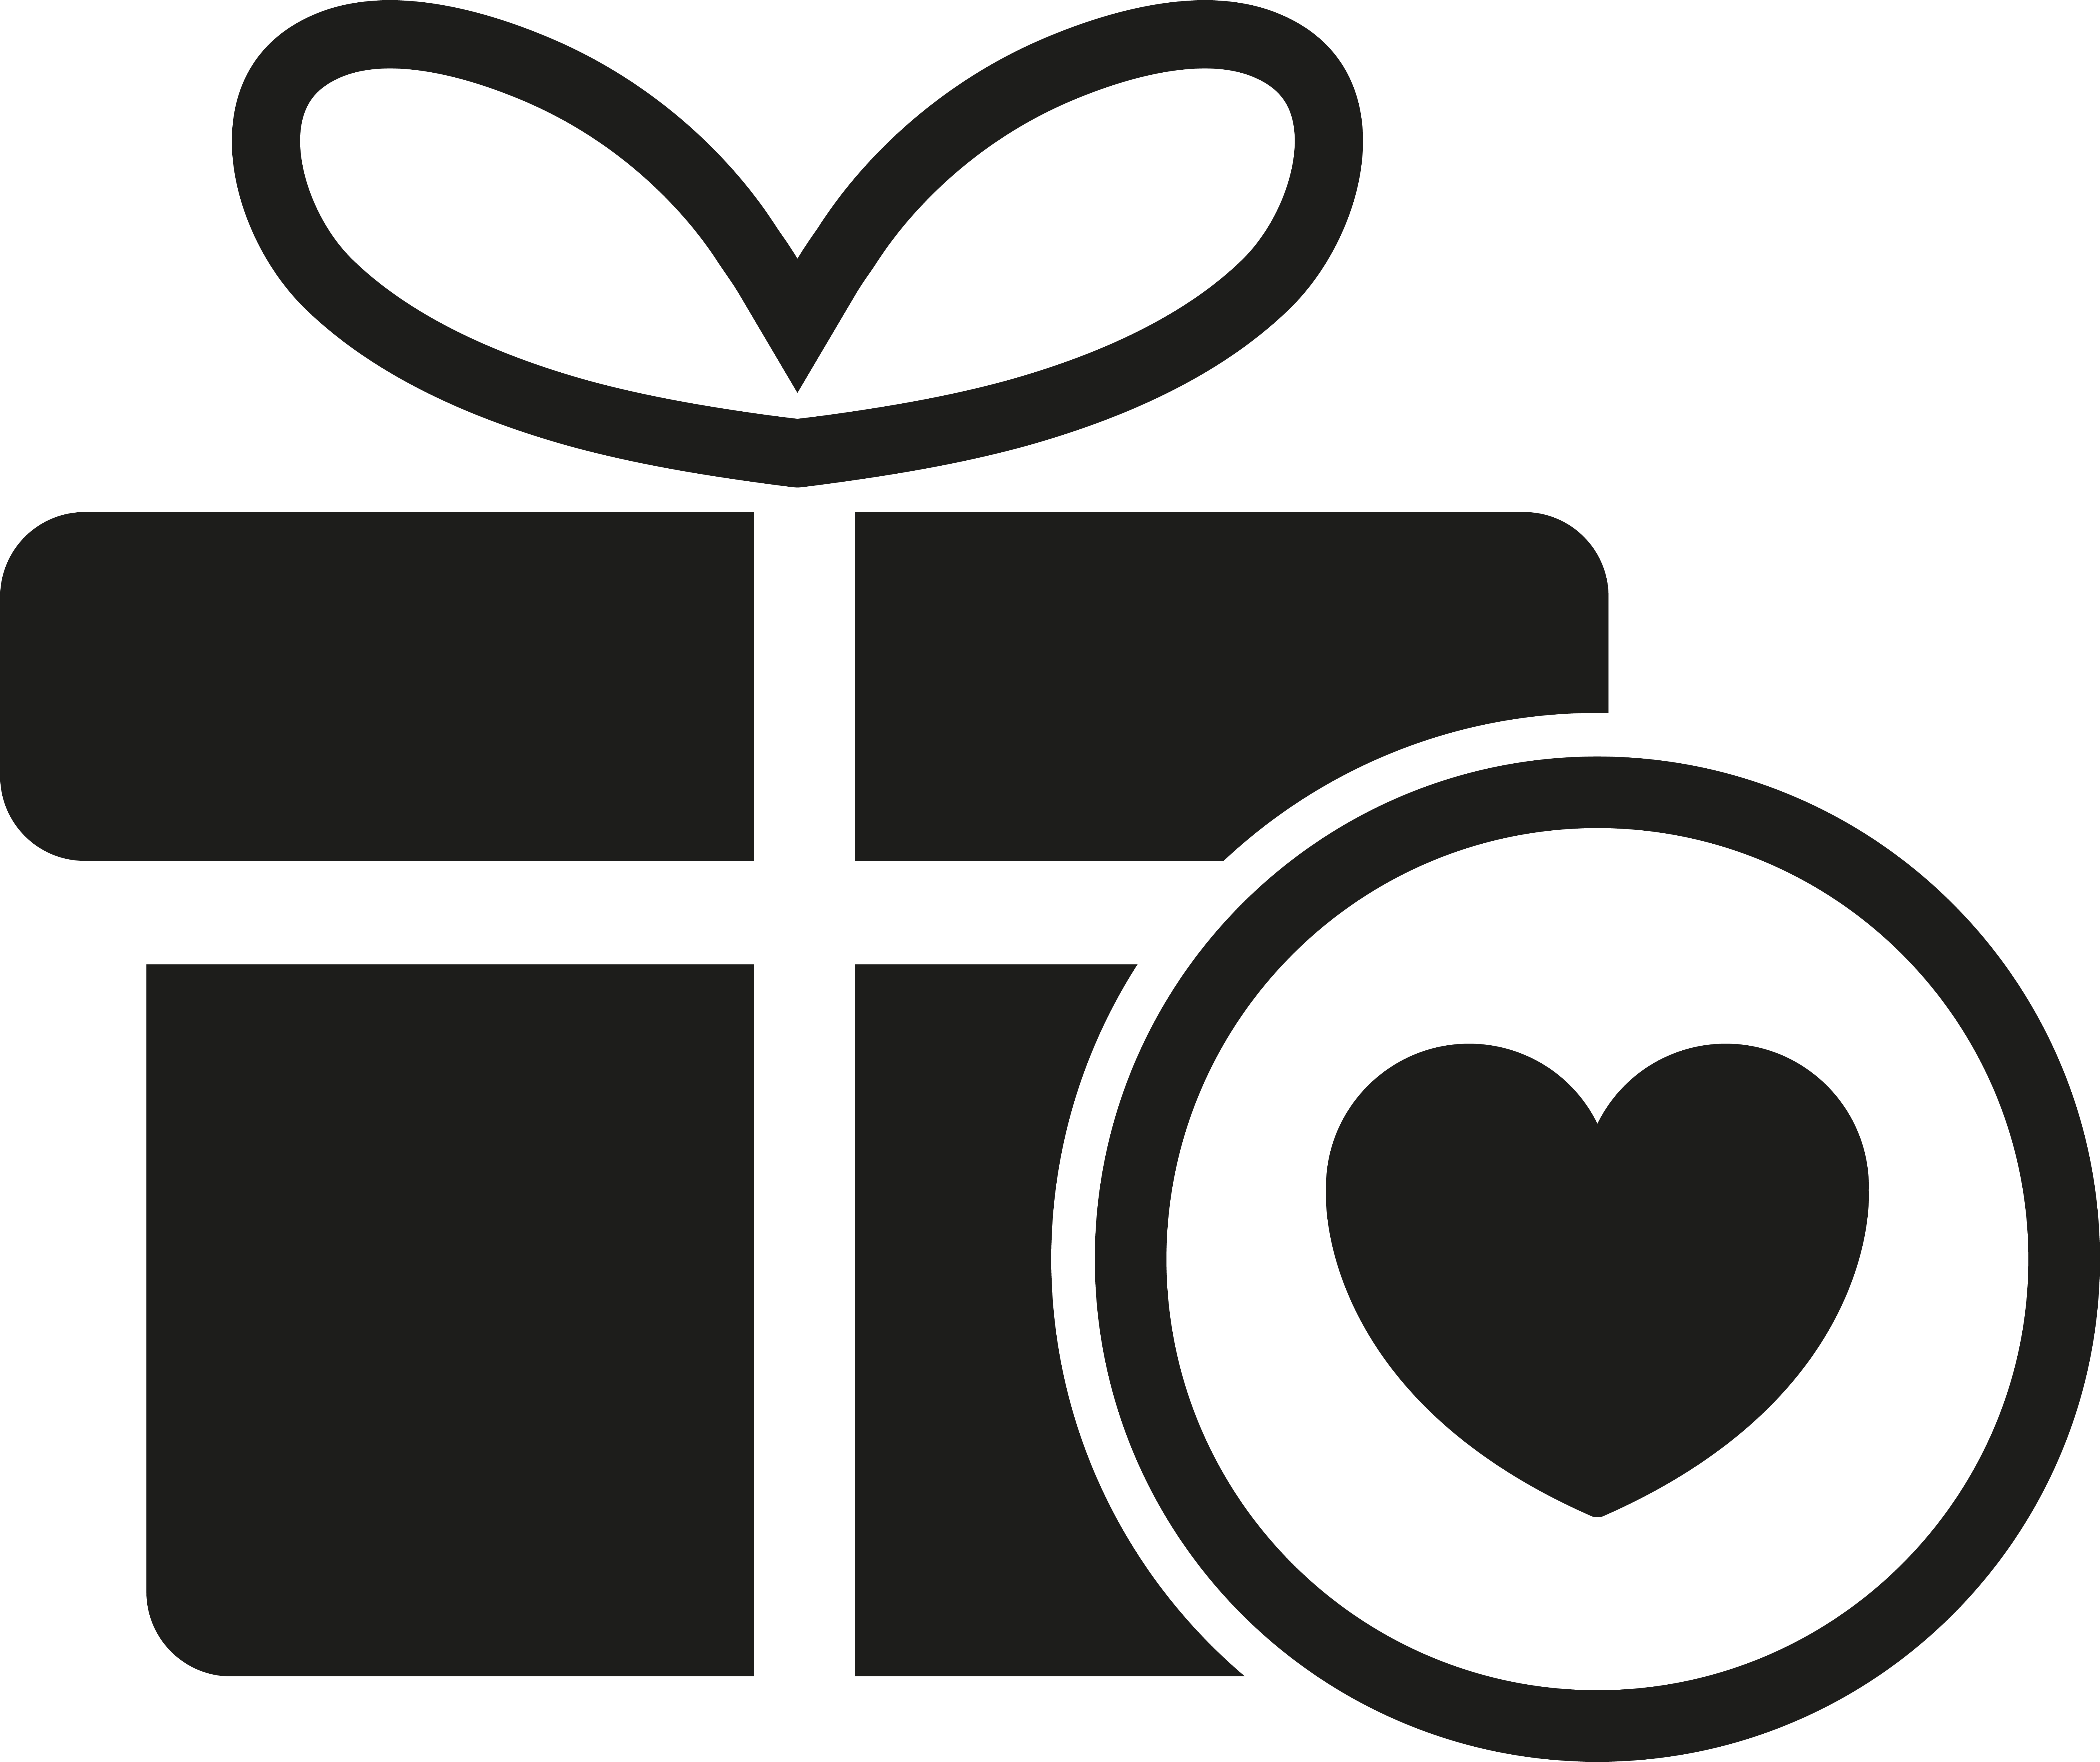 black and white icon of a gift with bow and a heart in a circle